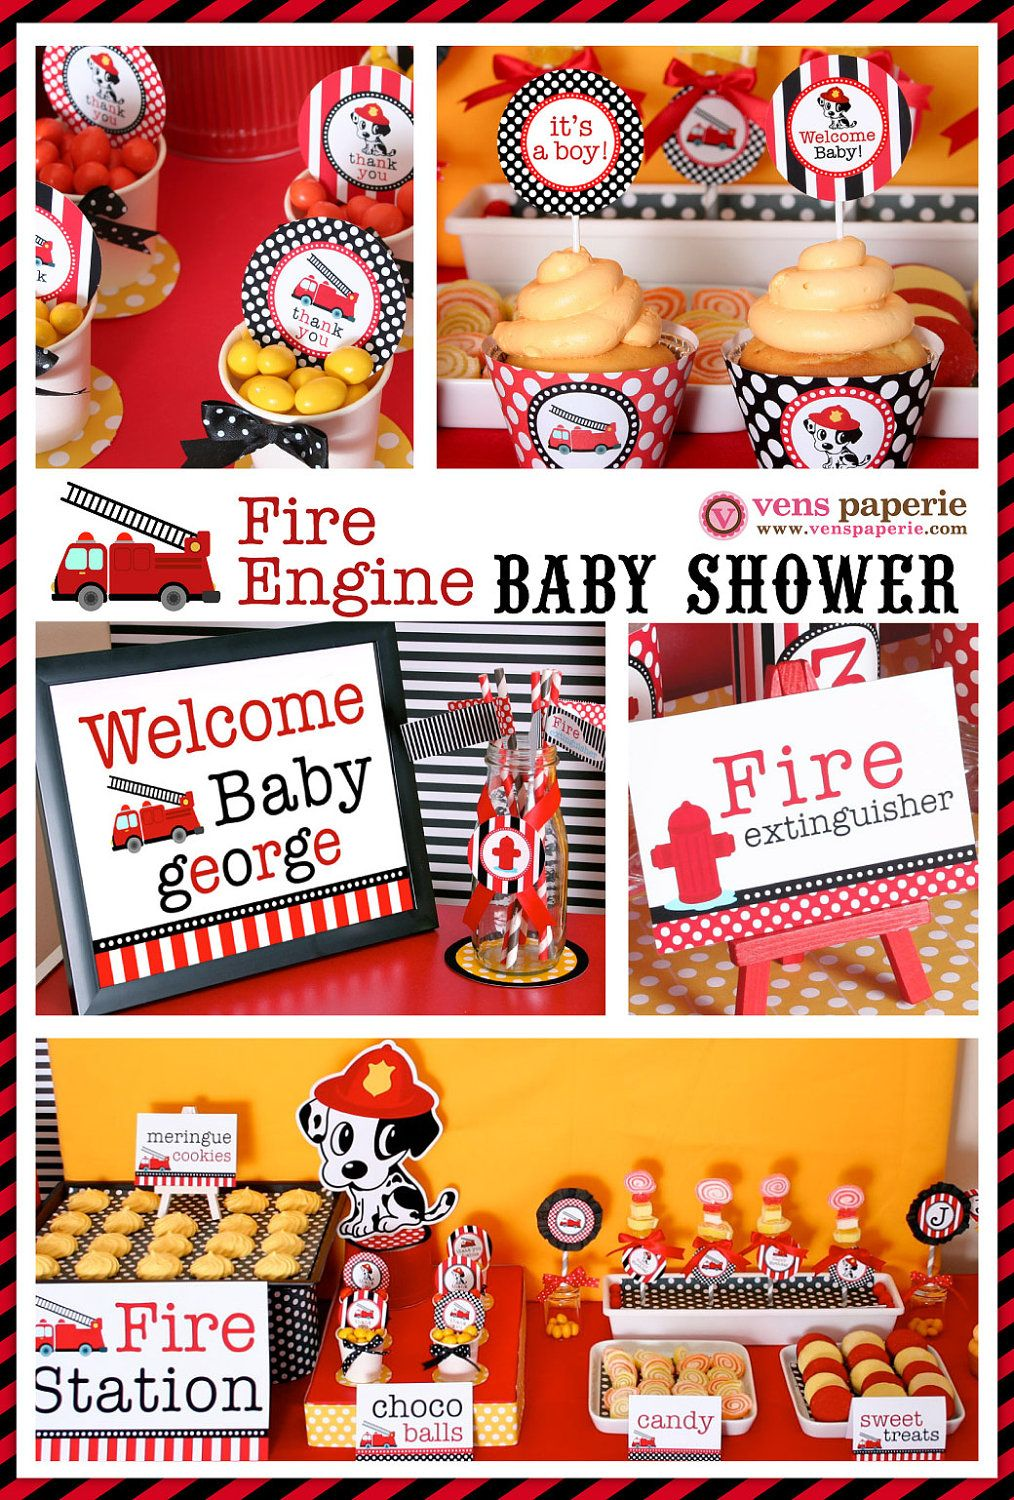 Awesome Fireman Baby Showers